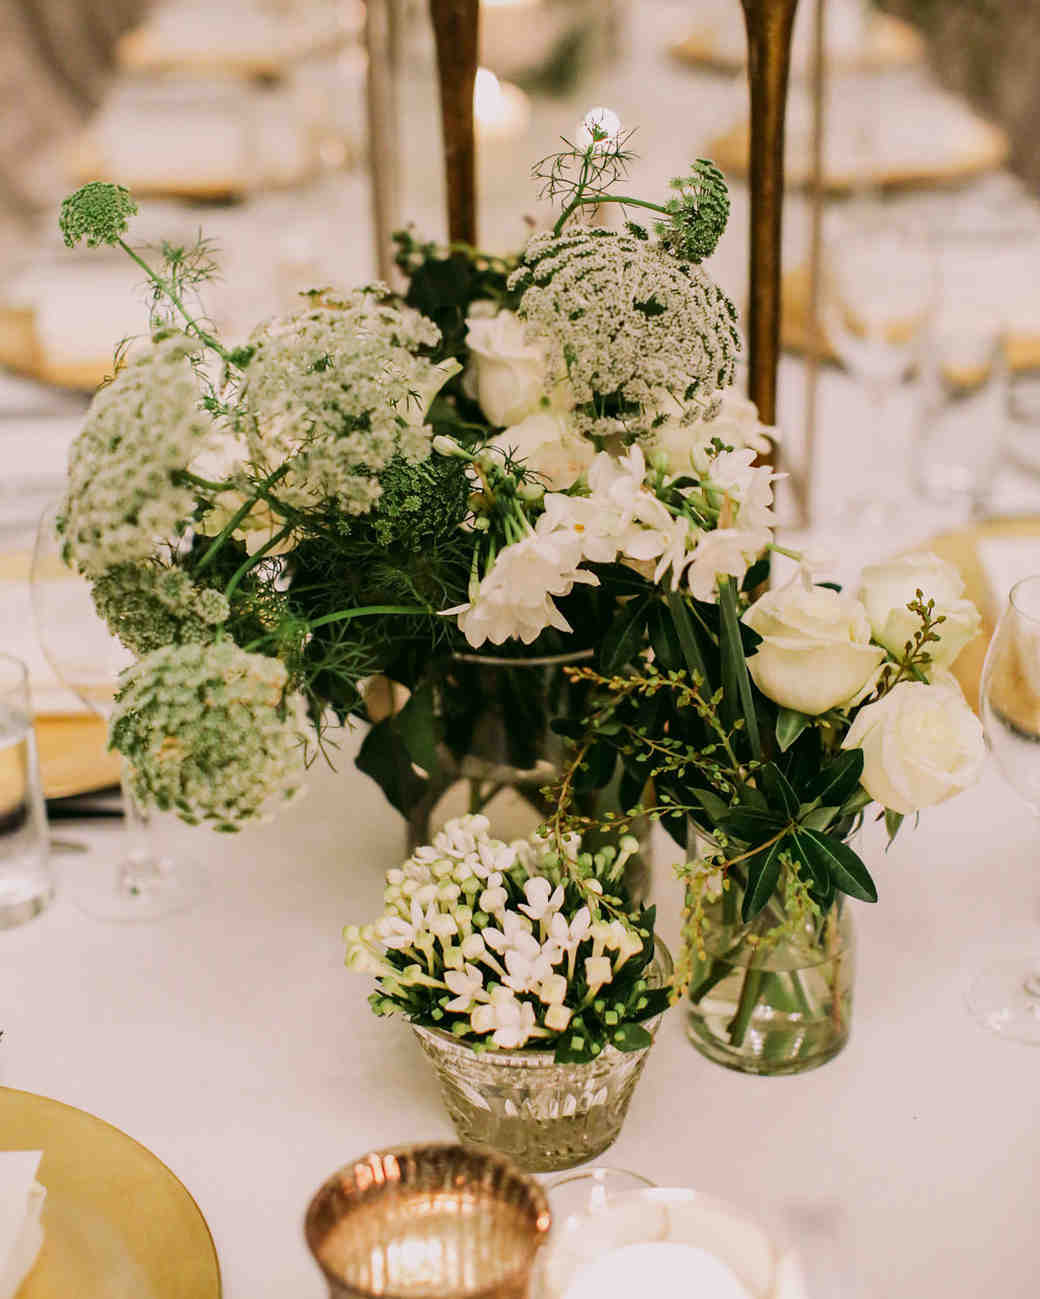 Get inexpensive ideas for wedding centerpieces. You can fit these arrangements and designs into your budget without sacrificing beauty or creativity.